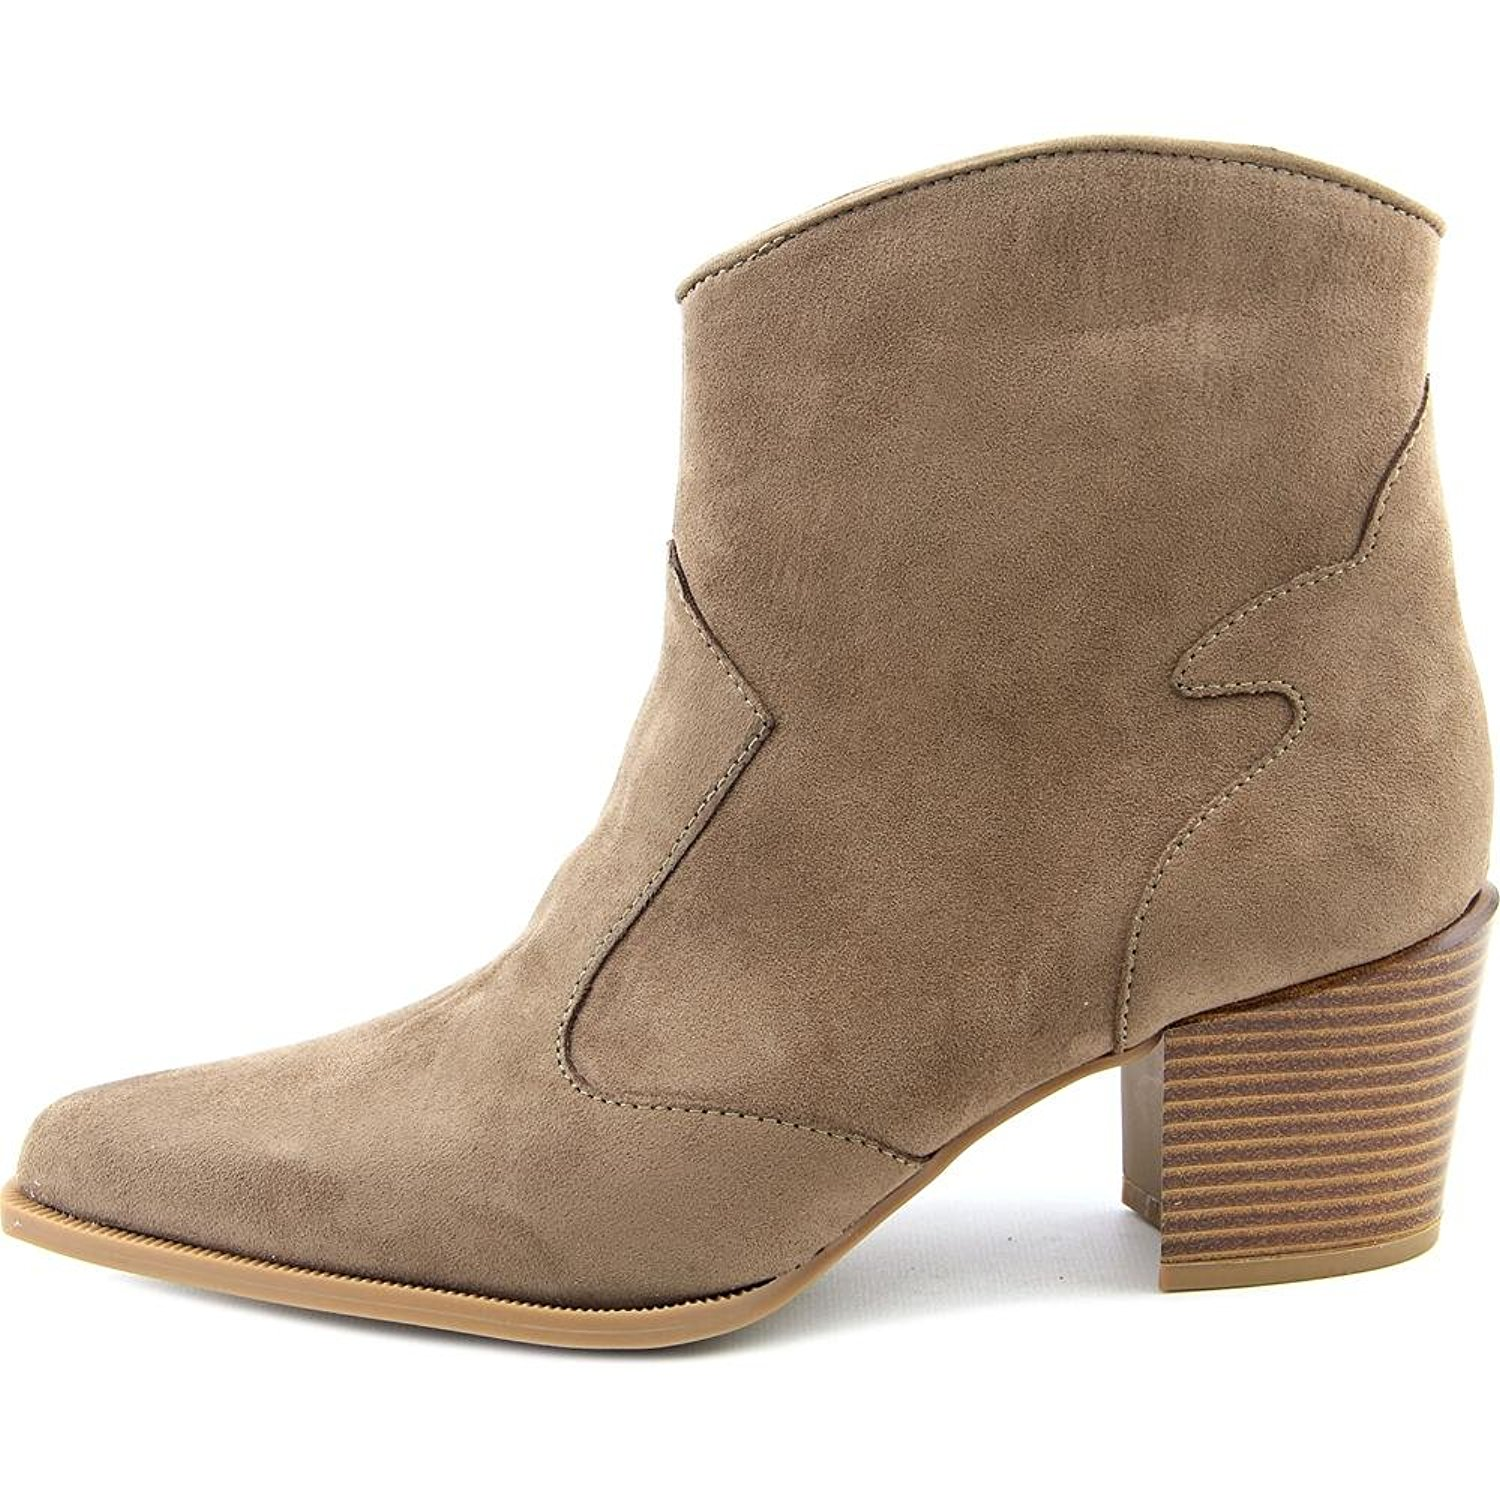 Womens Finley Almond Toe Ankle Fashion Boots